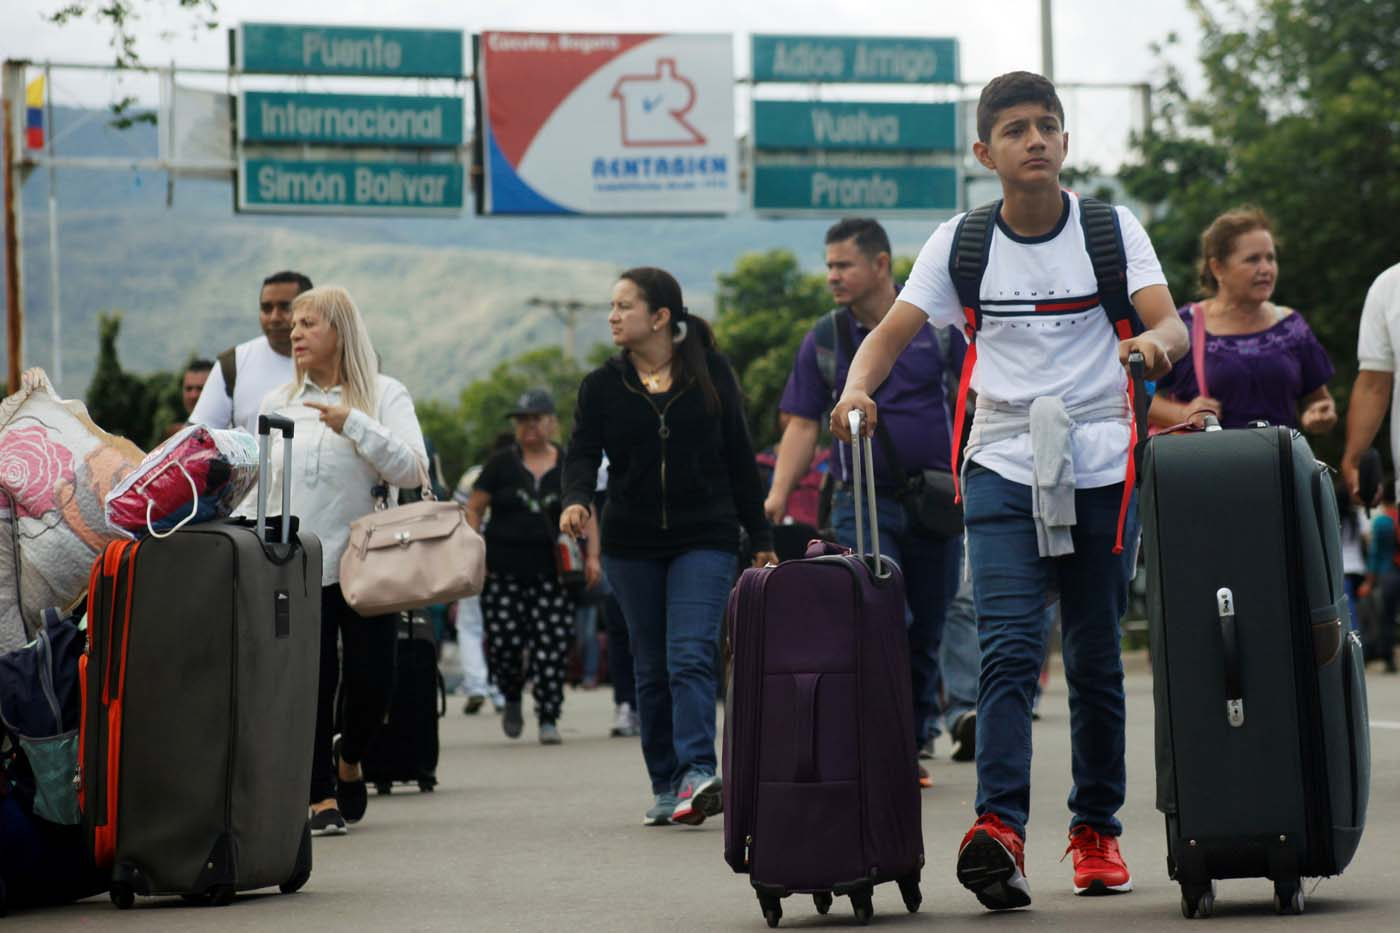 A young man pushes his luggage after crossing the Simon Bolivar international bridge from Venezuela, in Cucuta, Colombia, July 25, 2017. REUTERS/Luis Parada